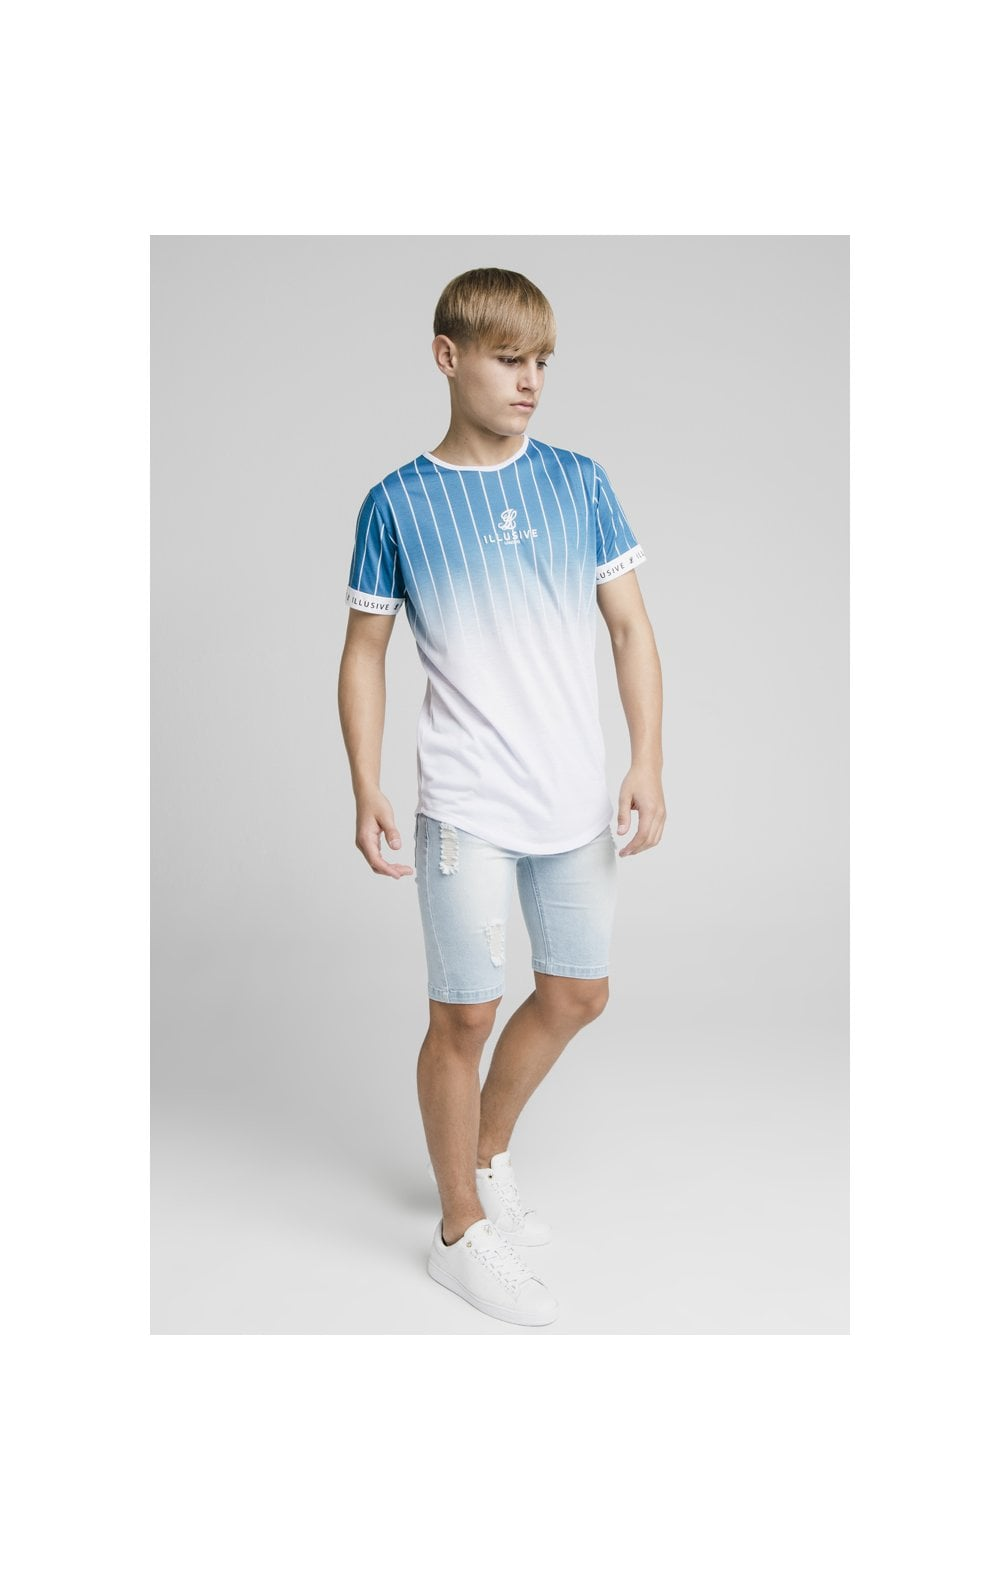 Illusive London Distressed Denim Shorts - Light Blue (4)